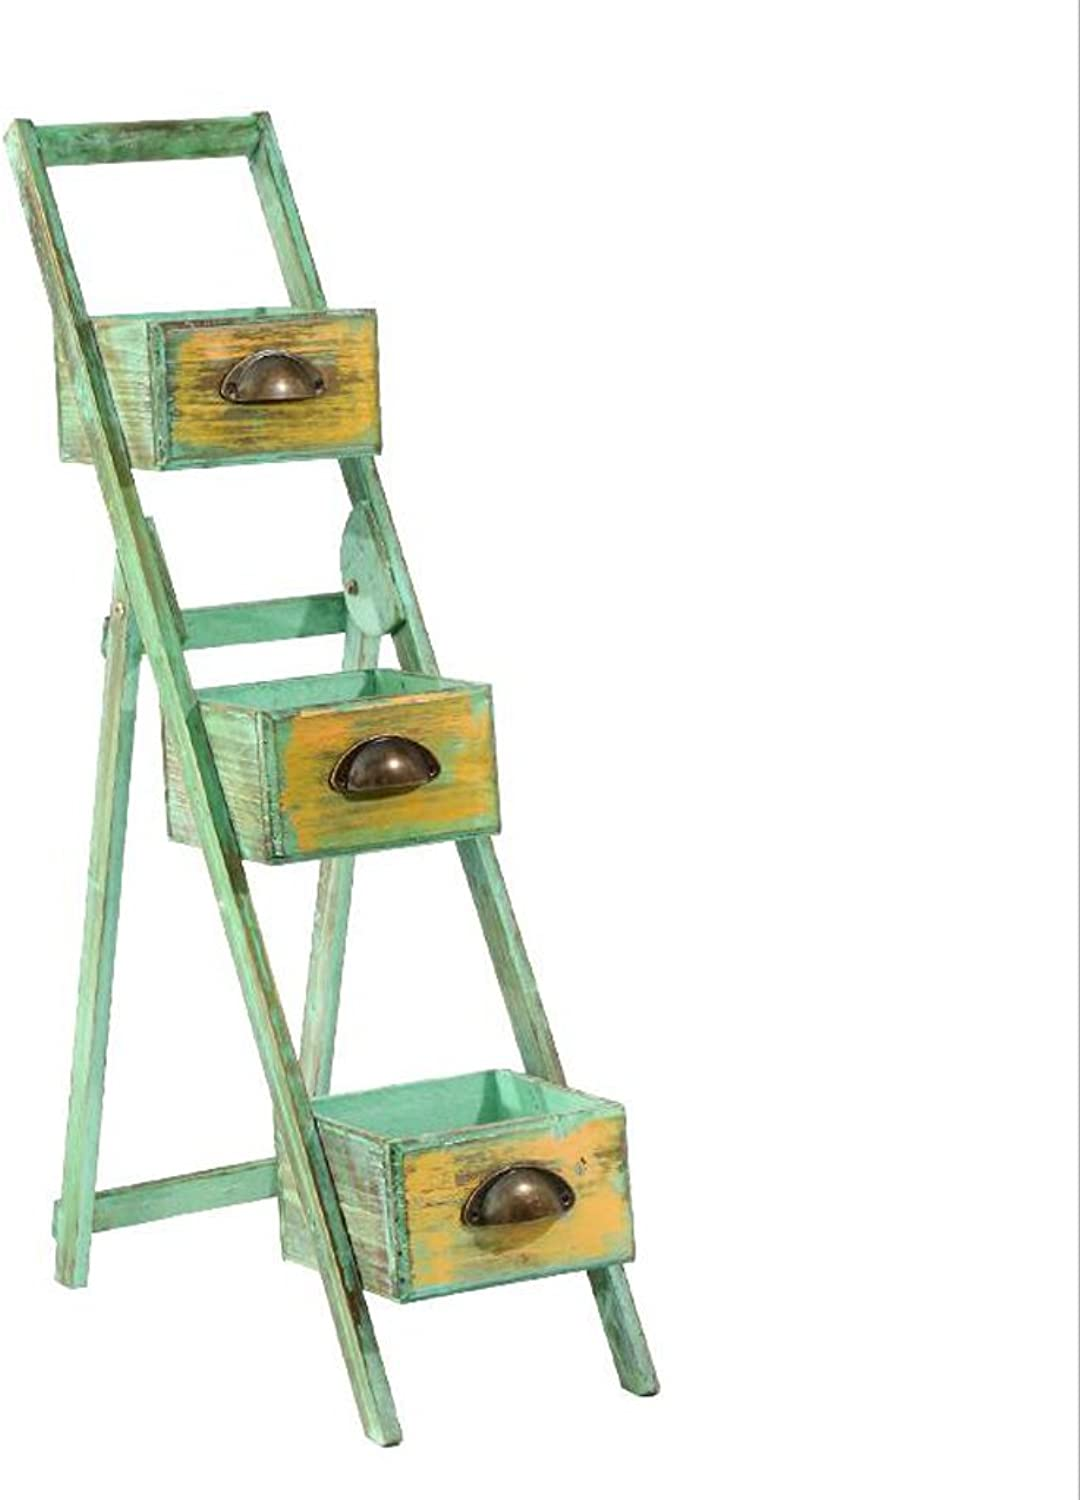 NYDZDM Flower Wooden Stairs Rack Plant Stand 82  50  20cm, Green Foldable